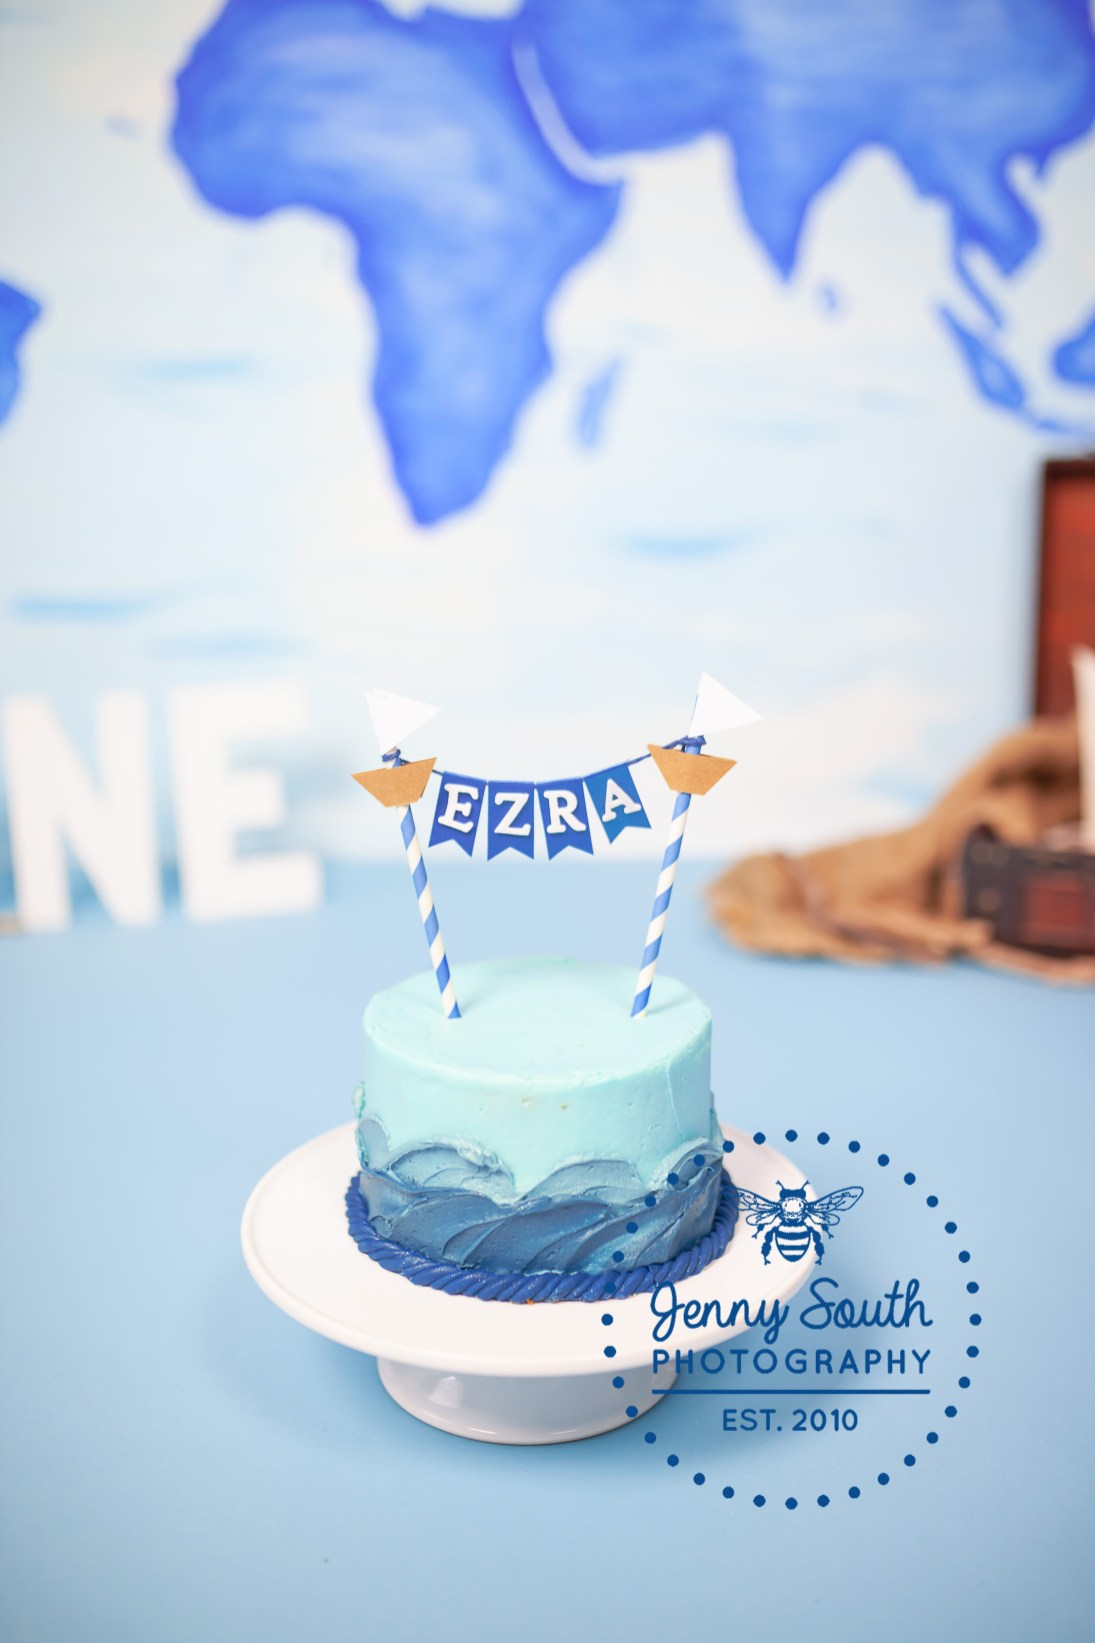 A nautical cake in shades of blue with a boat themed cake topper against a hand painted backdrop.